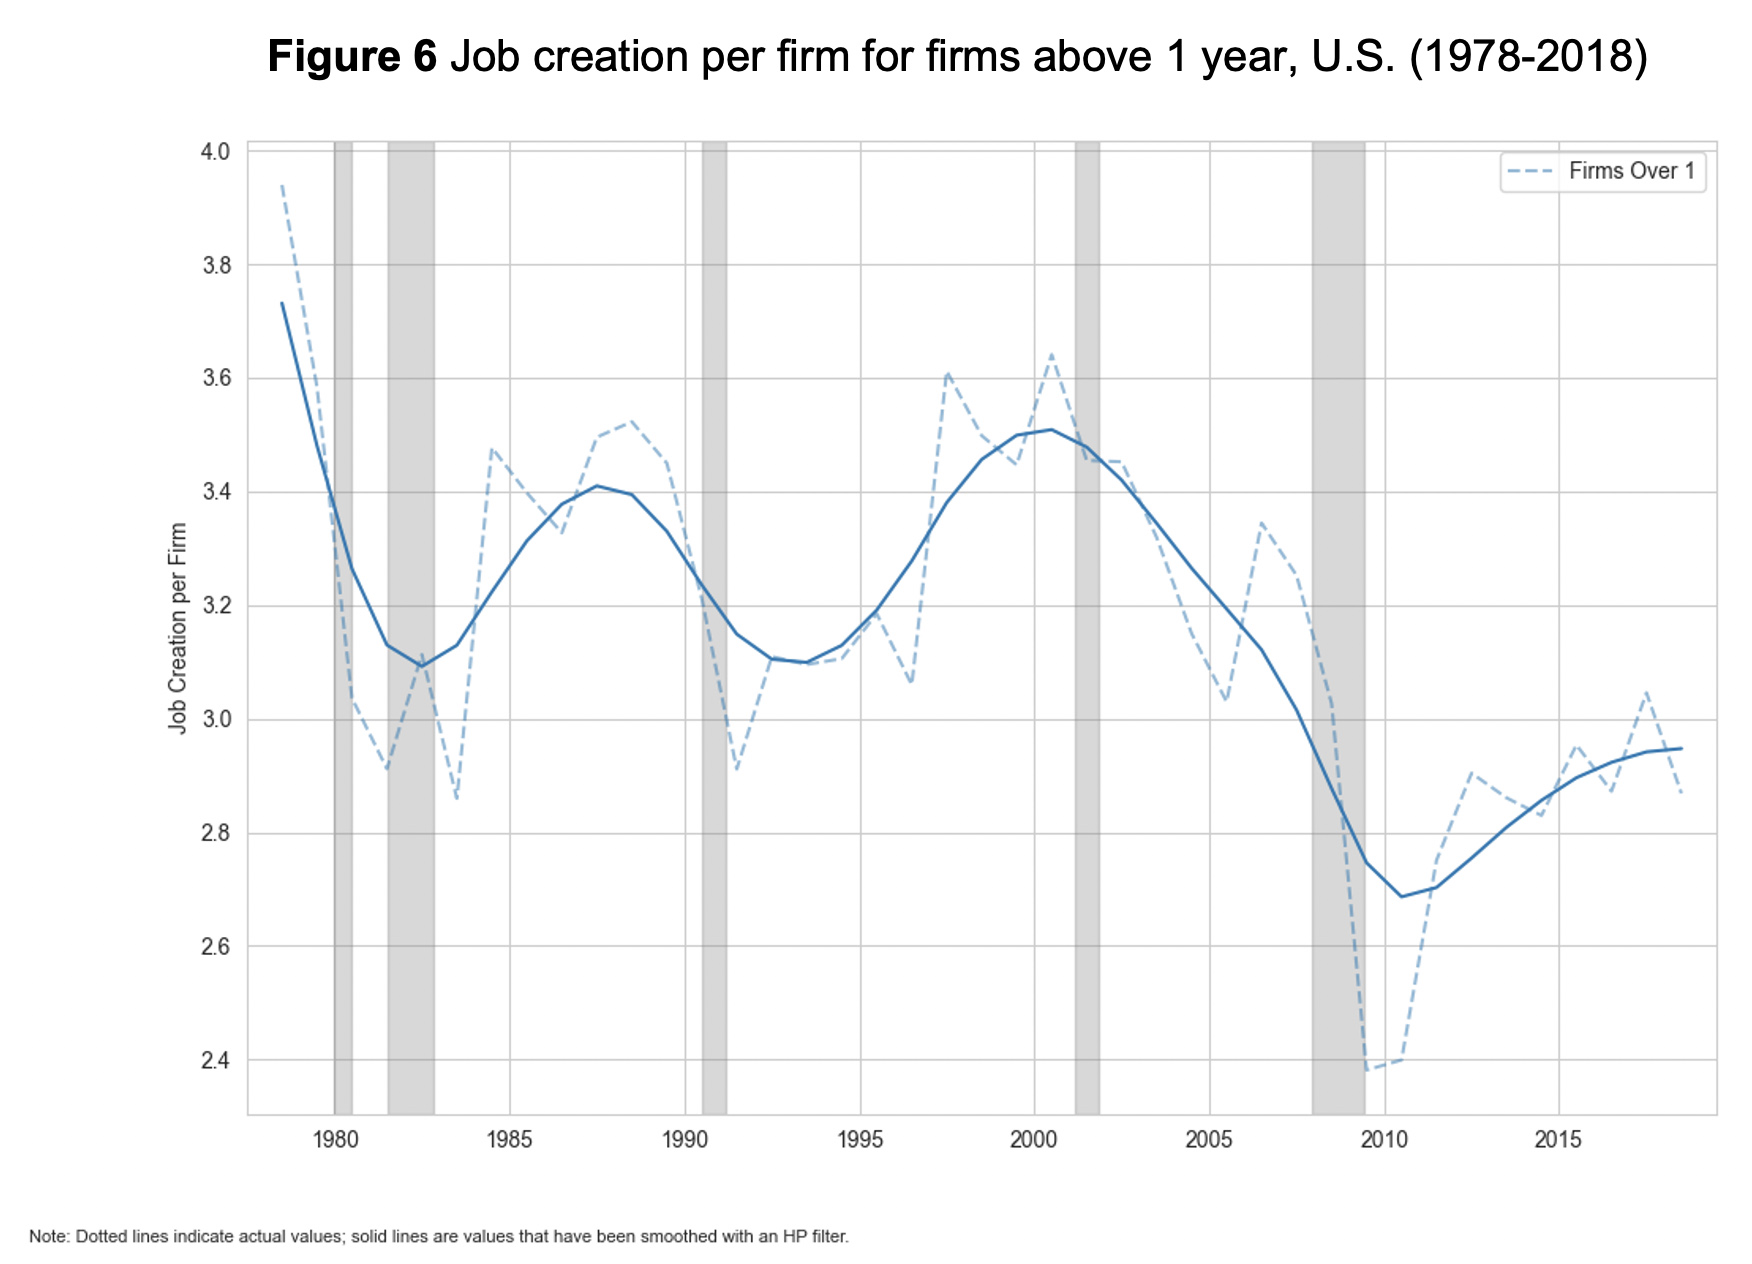 Figure 6: Job creation per firm for firms above 1 year, U.S. (1978-2018)